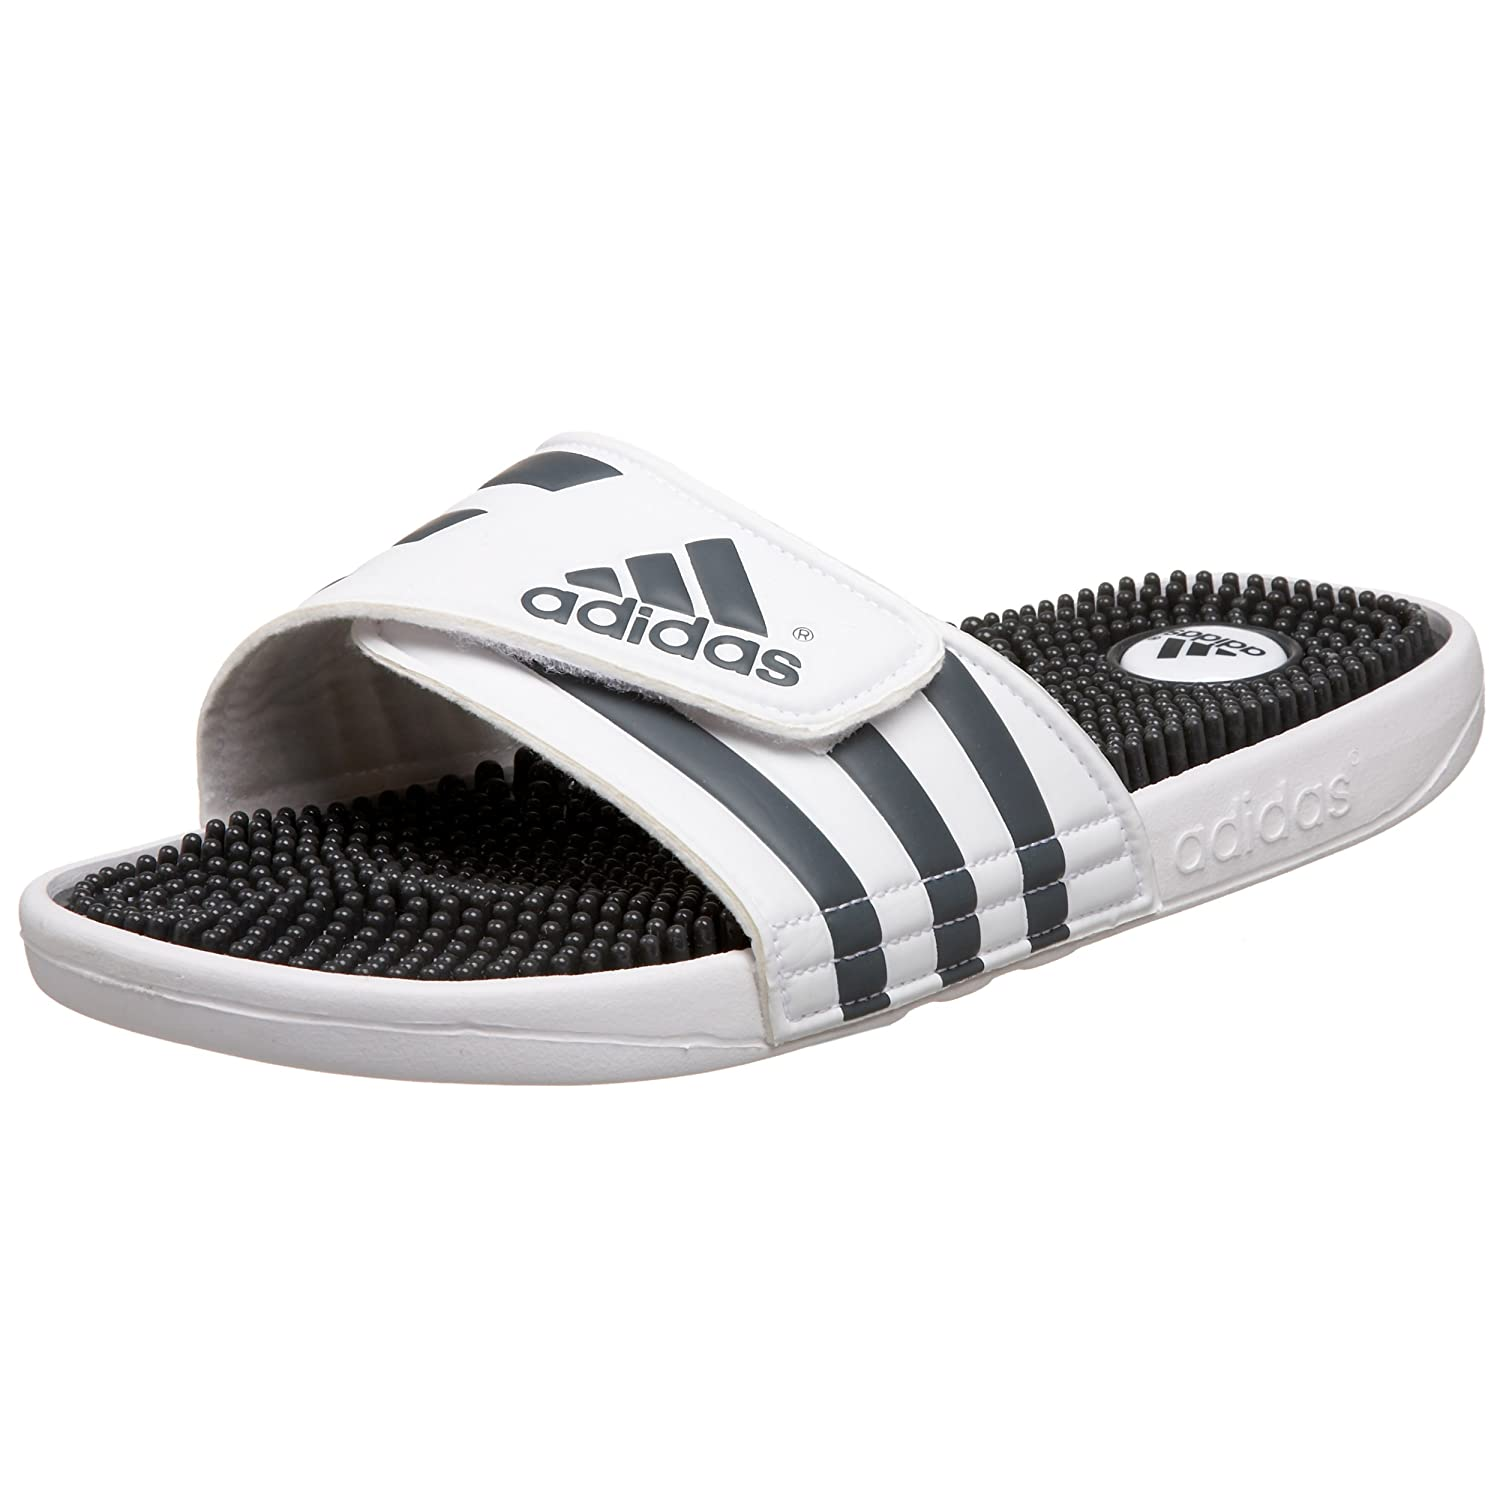 978fe2835 adidas Mens Adissage-M Adissage  Amazon.com.au  Fashion